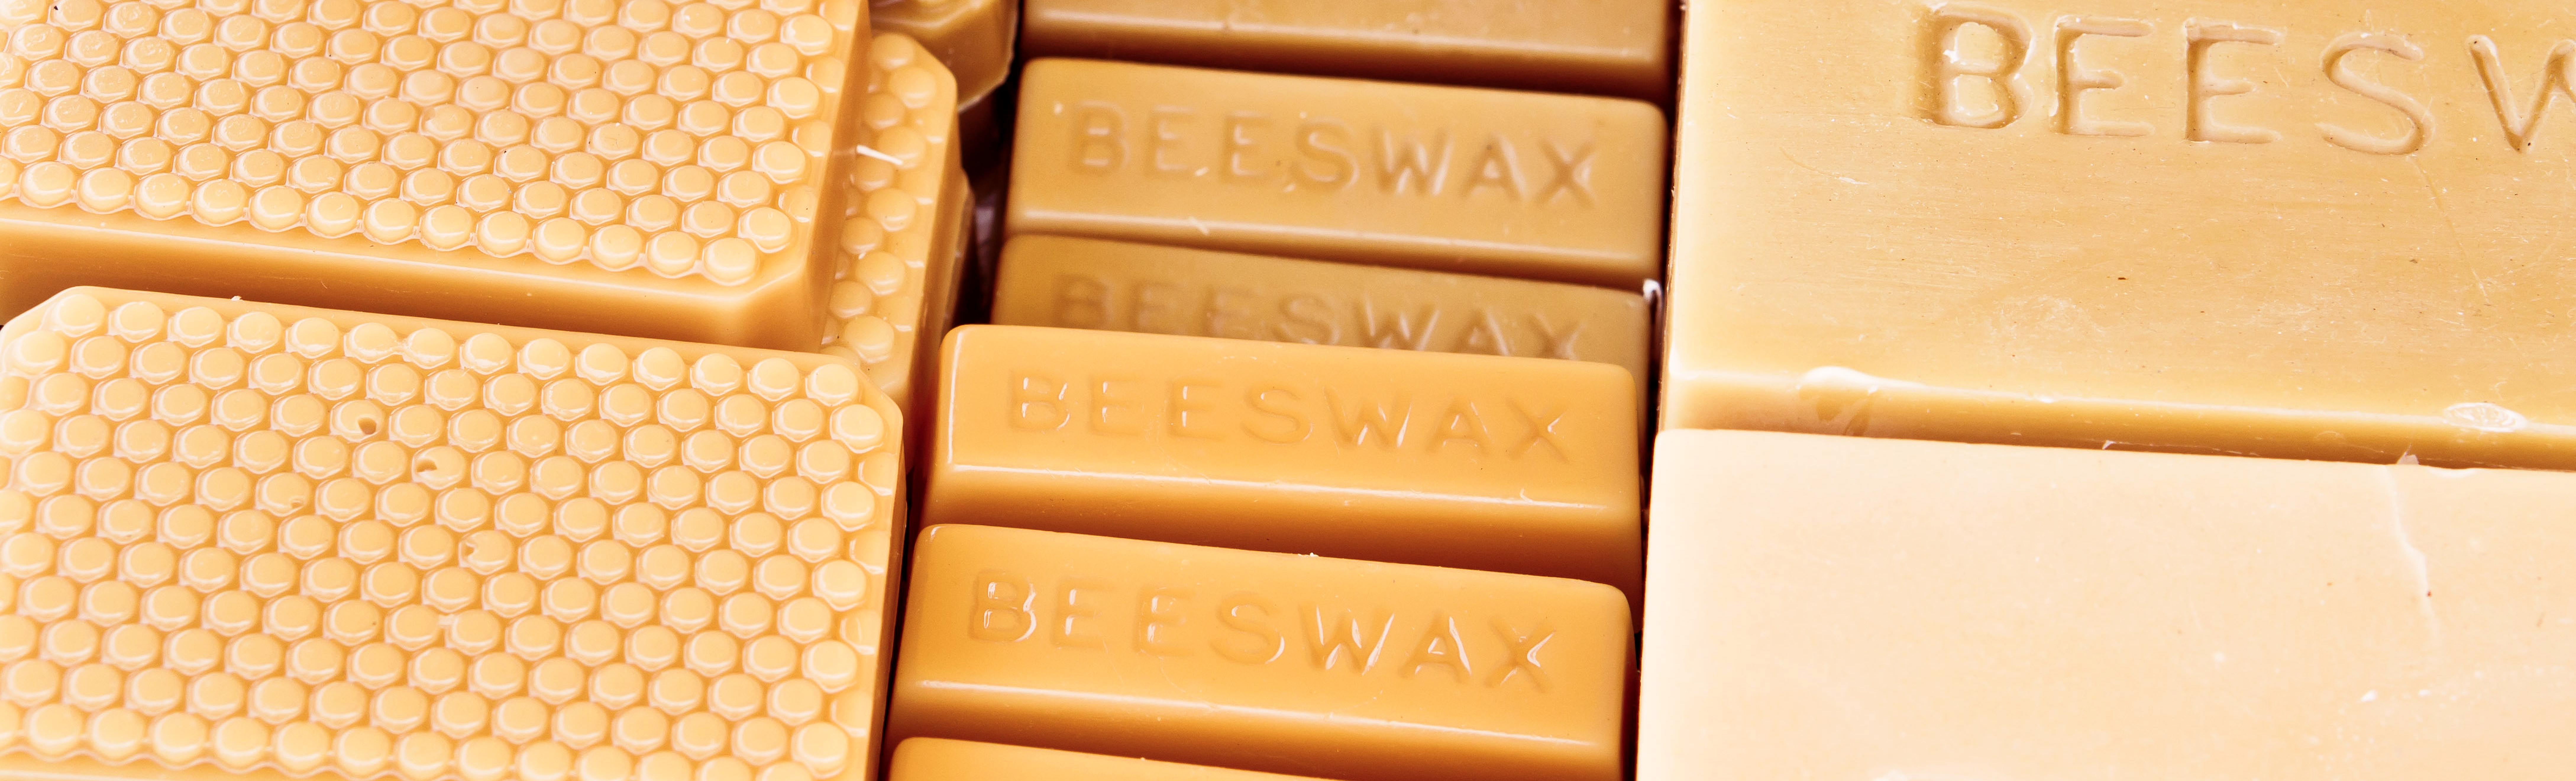 100% Raw Beeswax